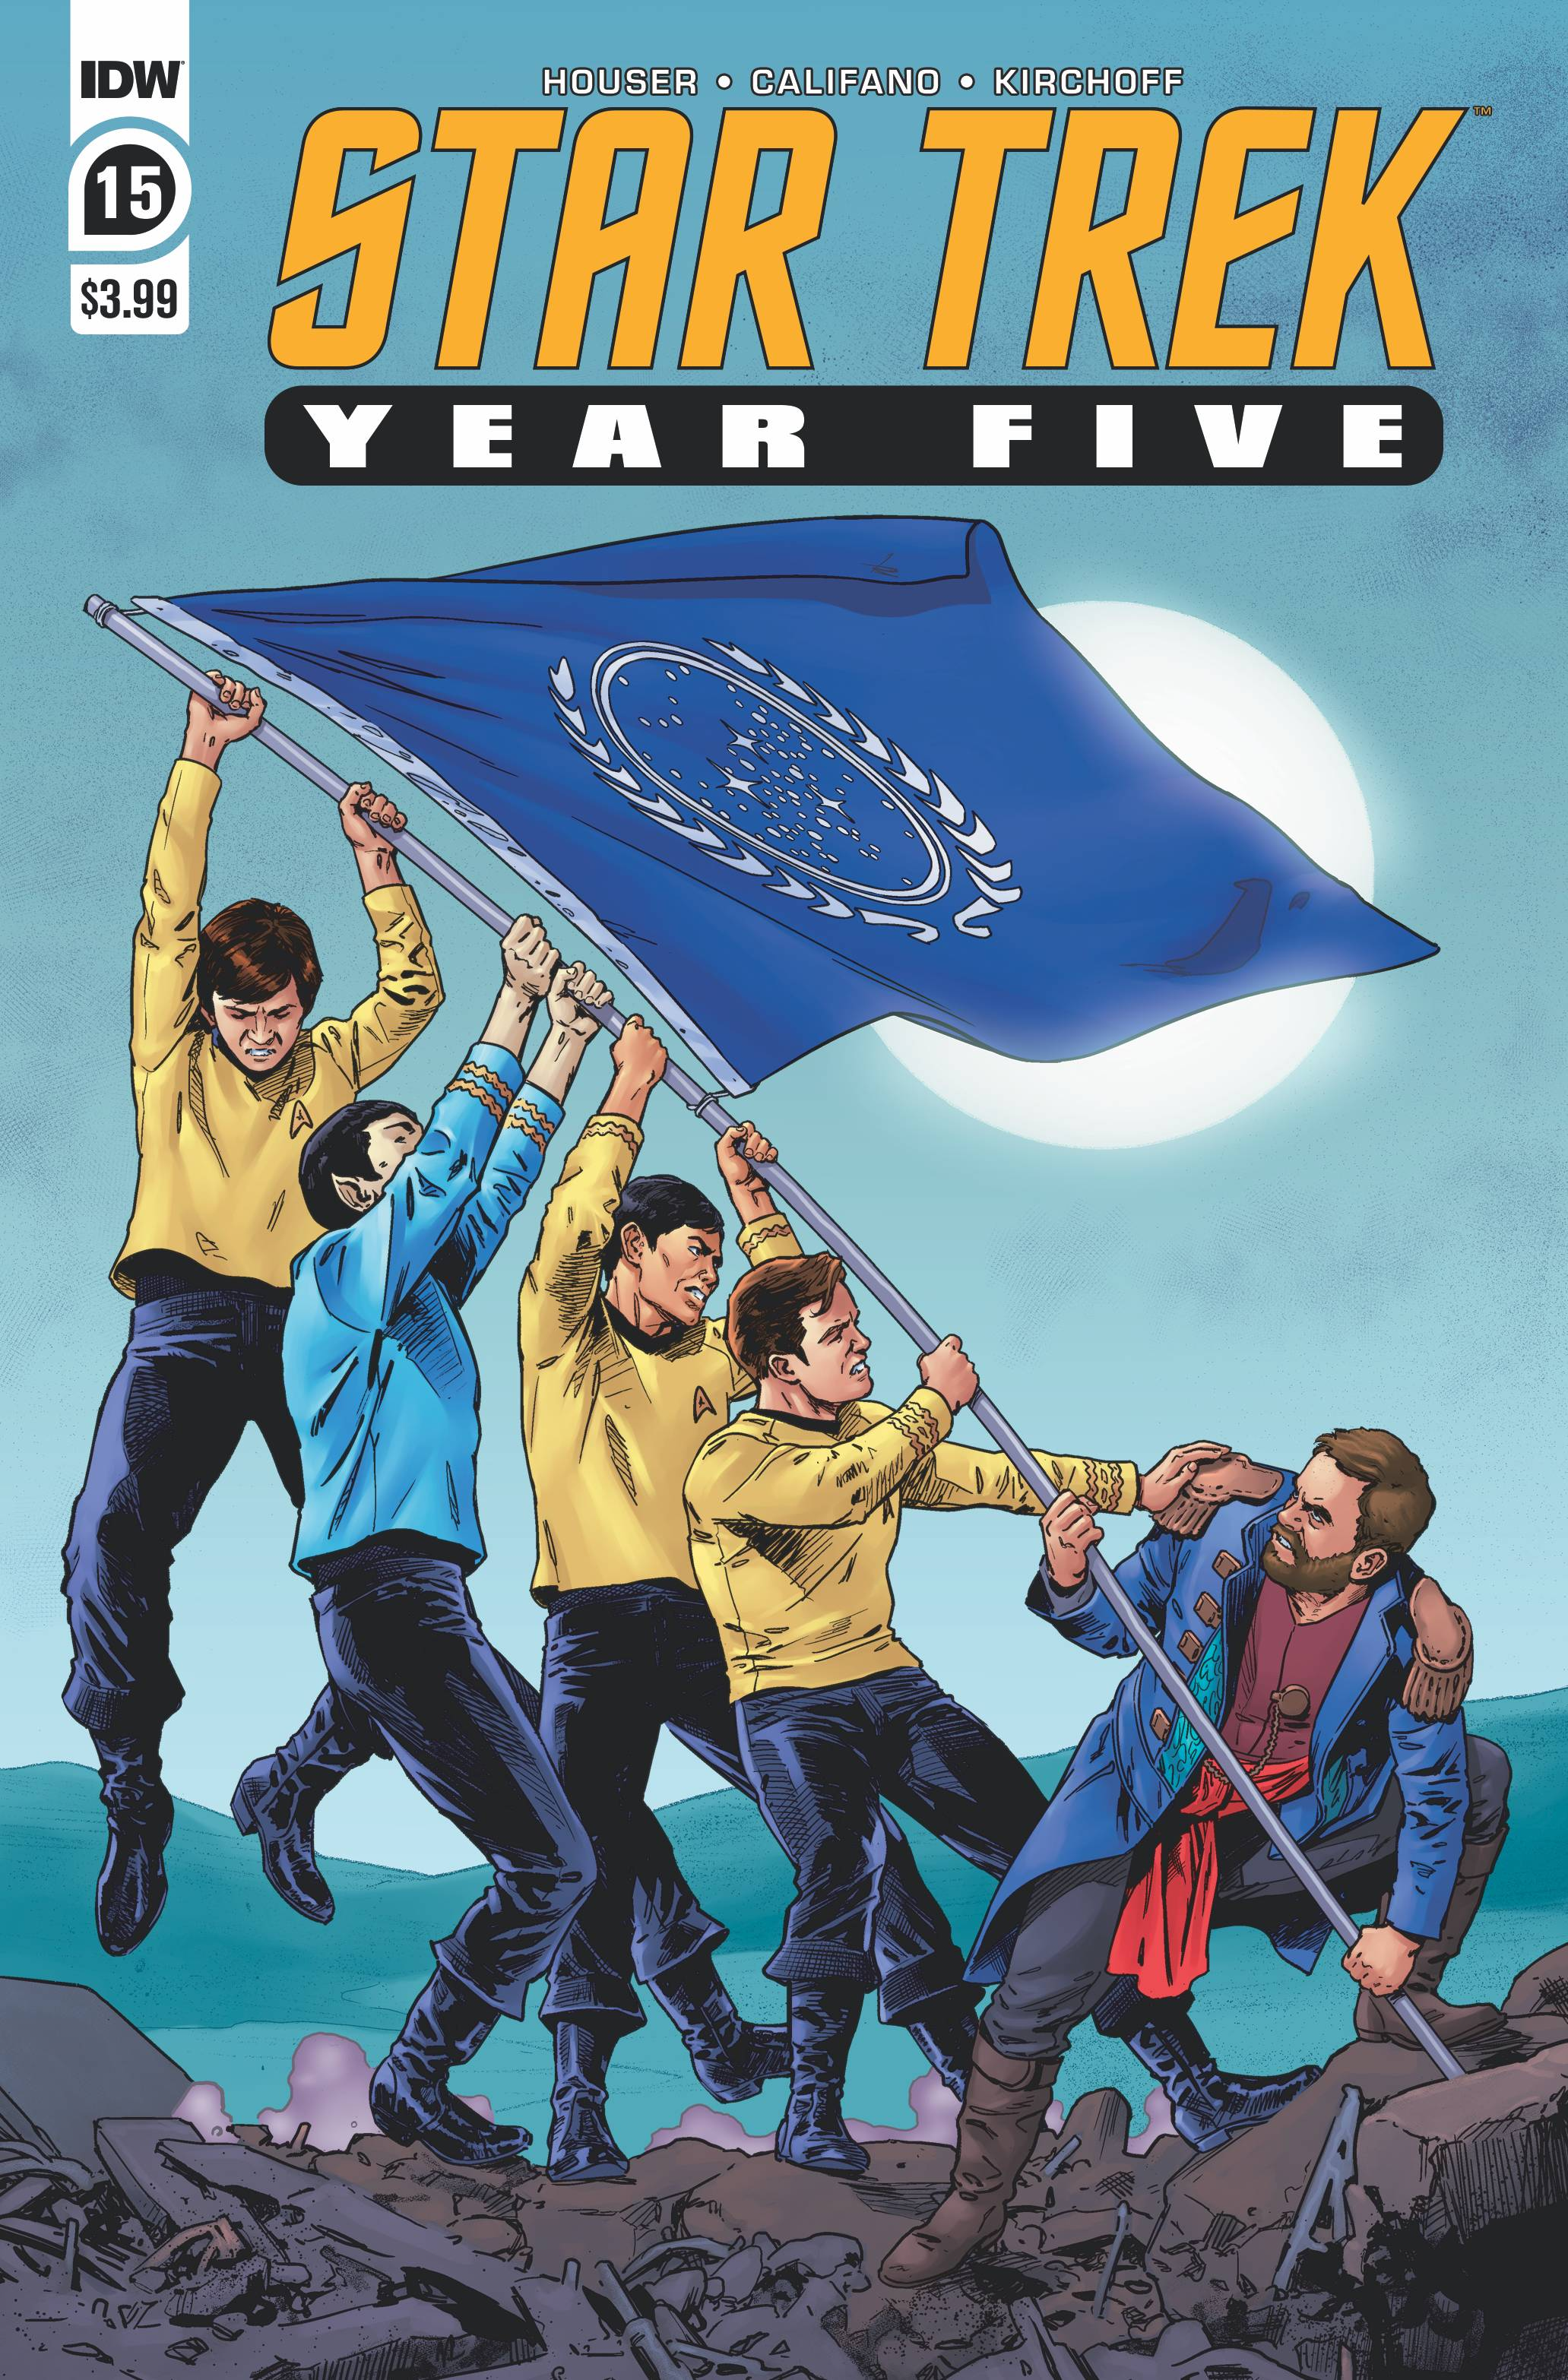 Star Trek: Year Five #15 (2020)